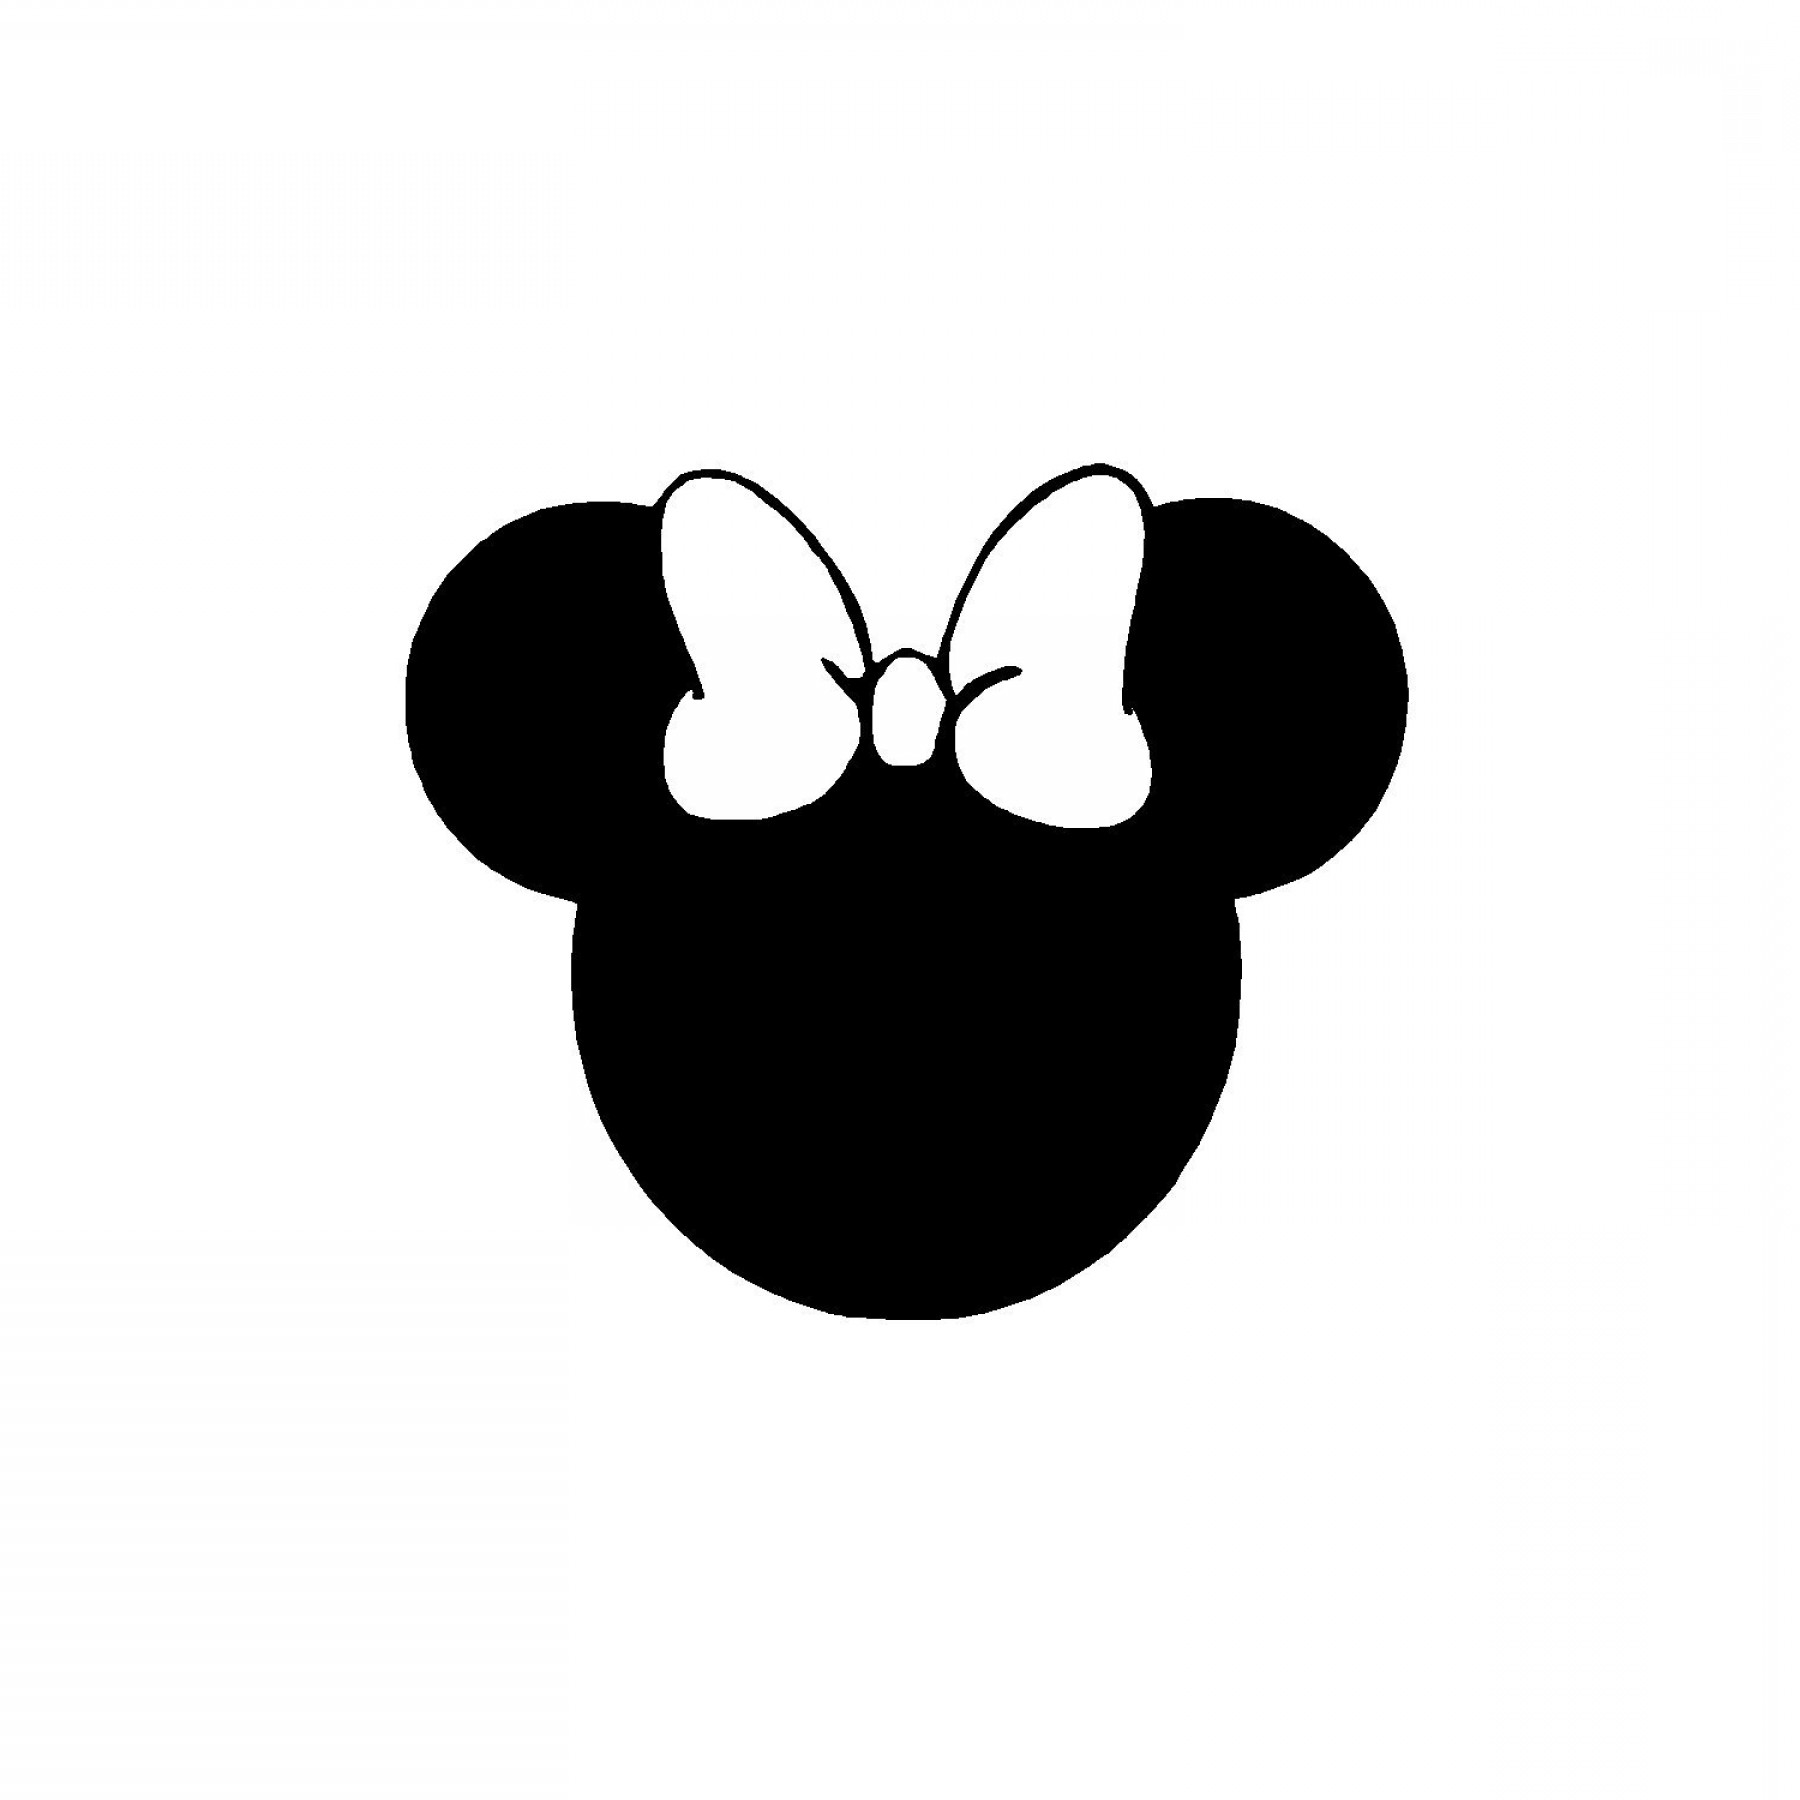 Minnie mouse vector.